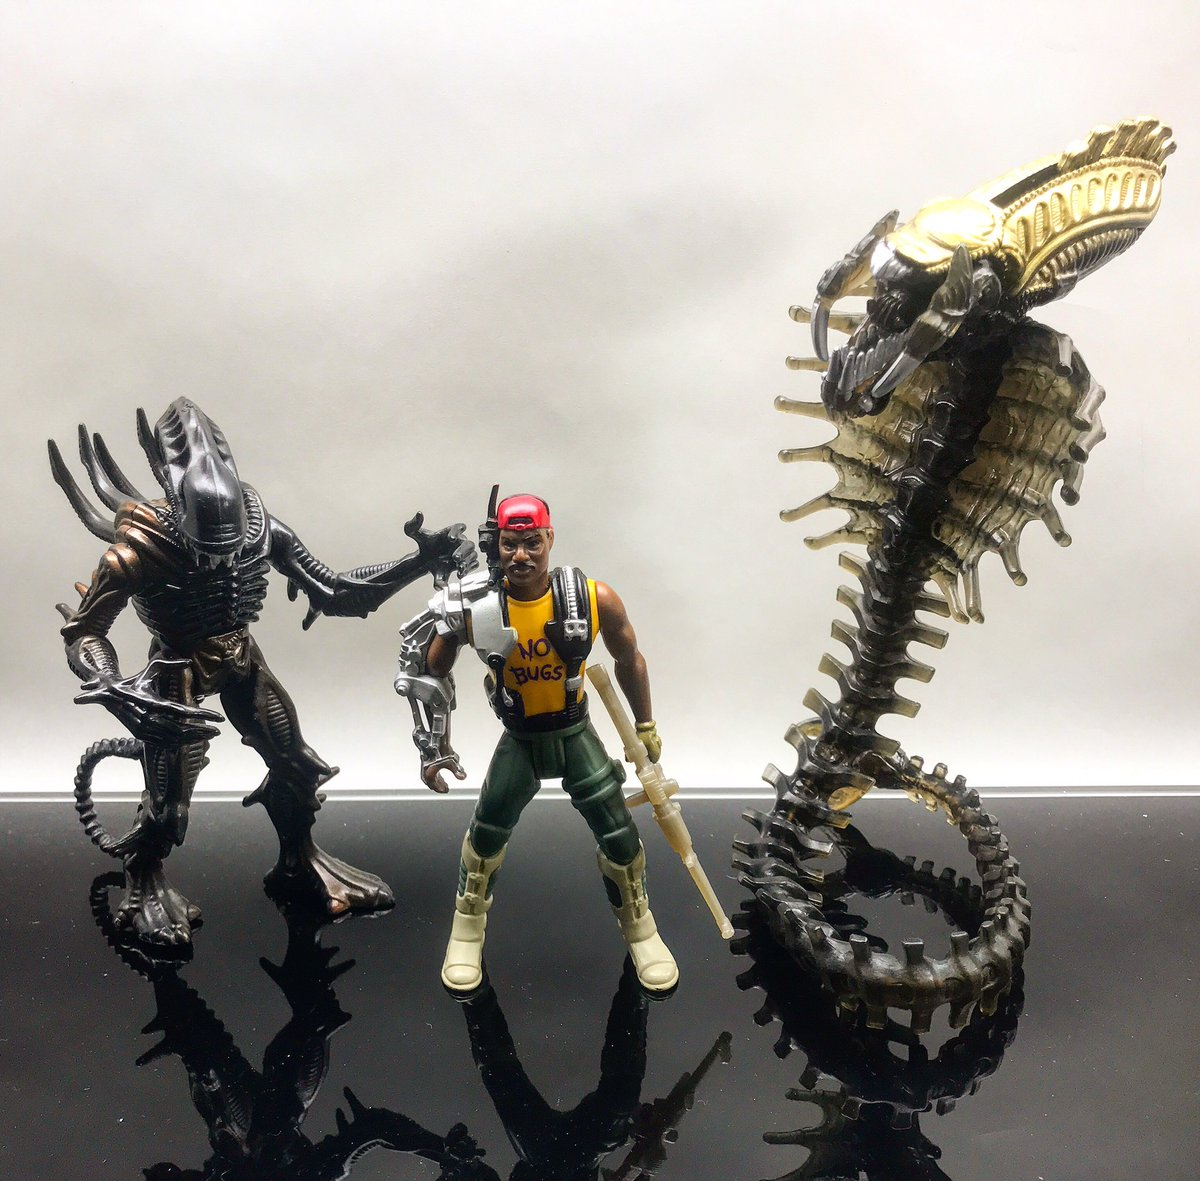 NECA_TOYS IS REALLY NAILING these Kenner tribute figures